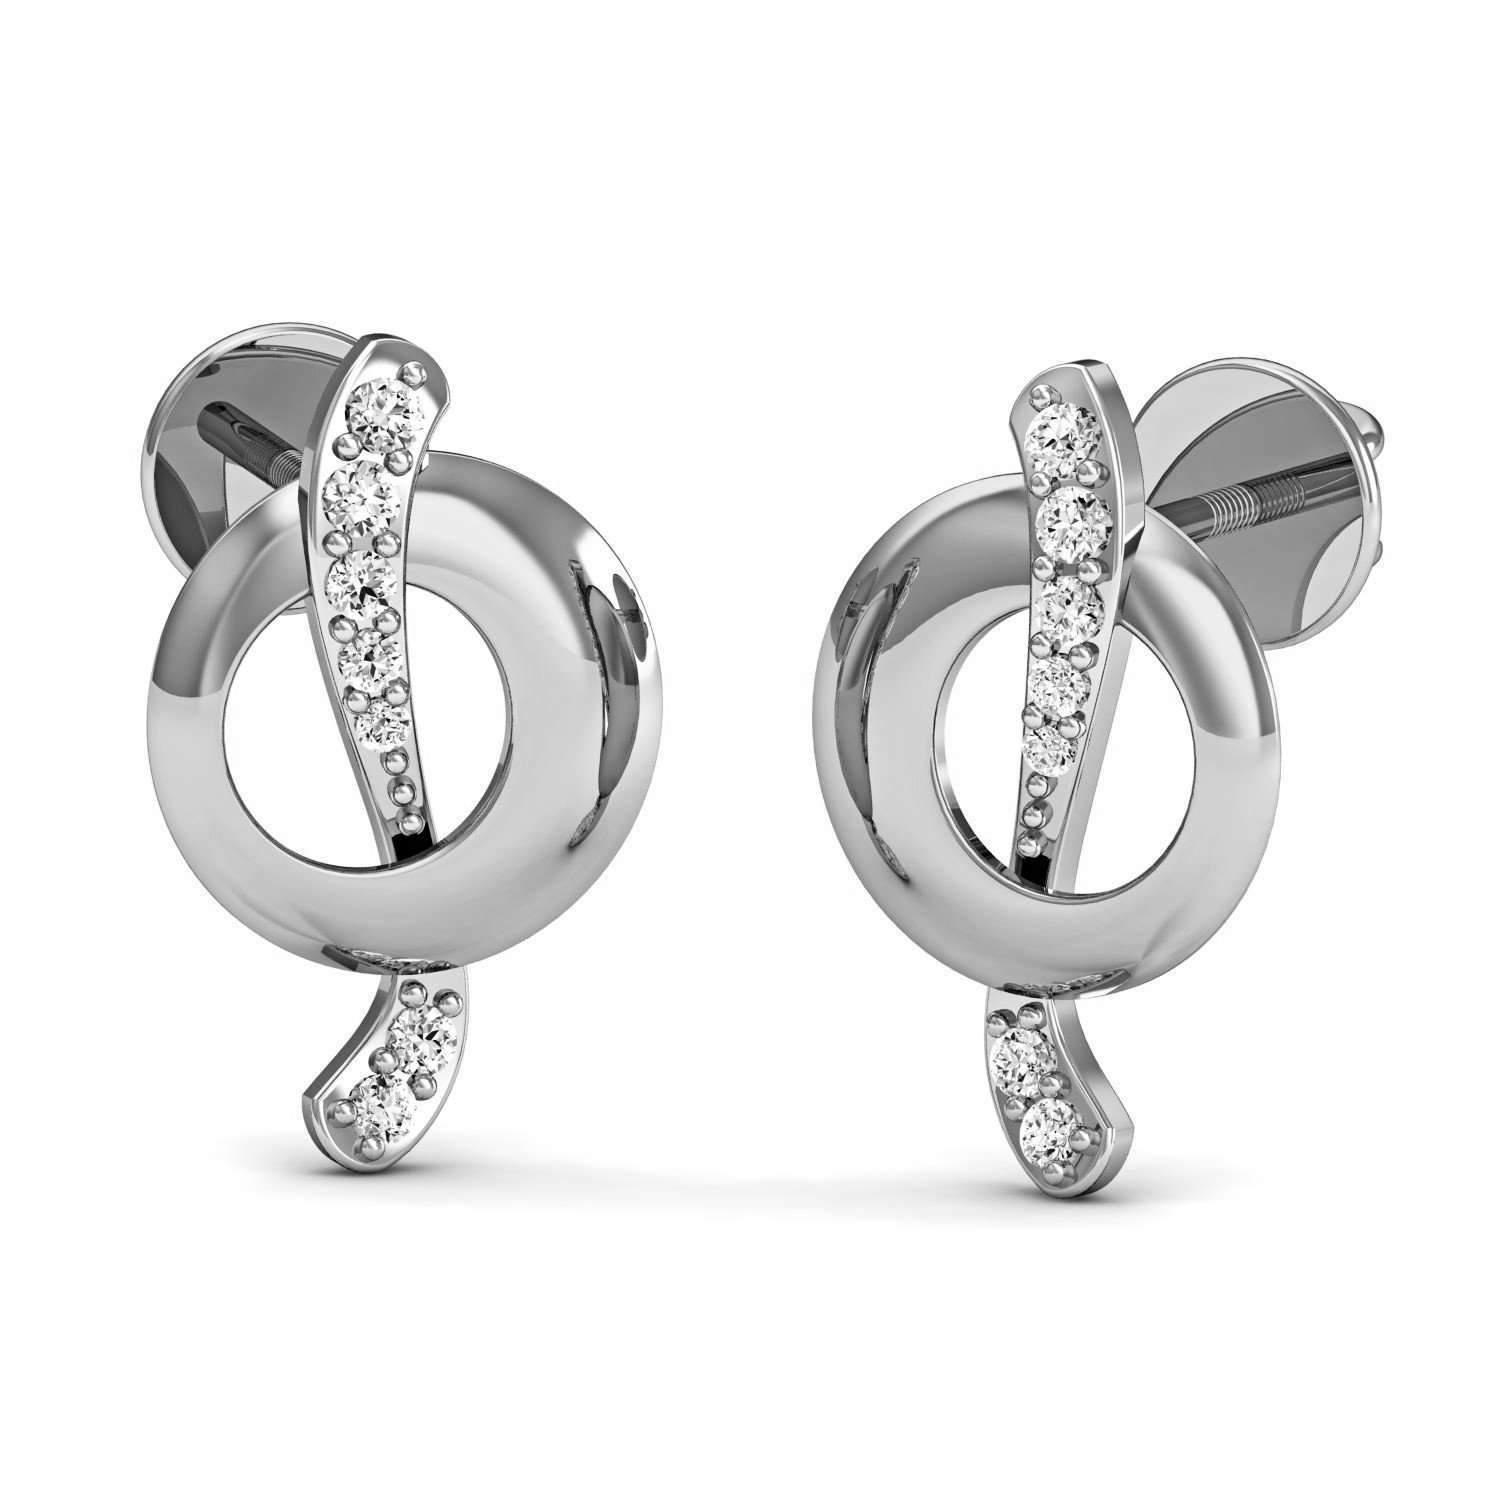 Diamoire Jewels Pave-Prong Diamond and 10kt White Gold Earrings Inspired by Nature QAHiwAc